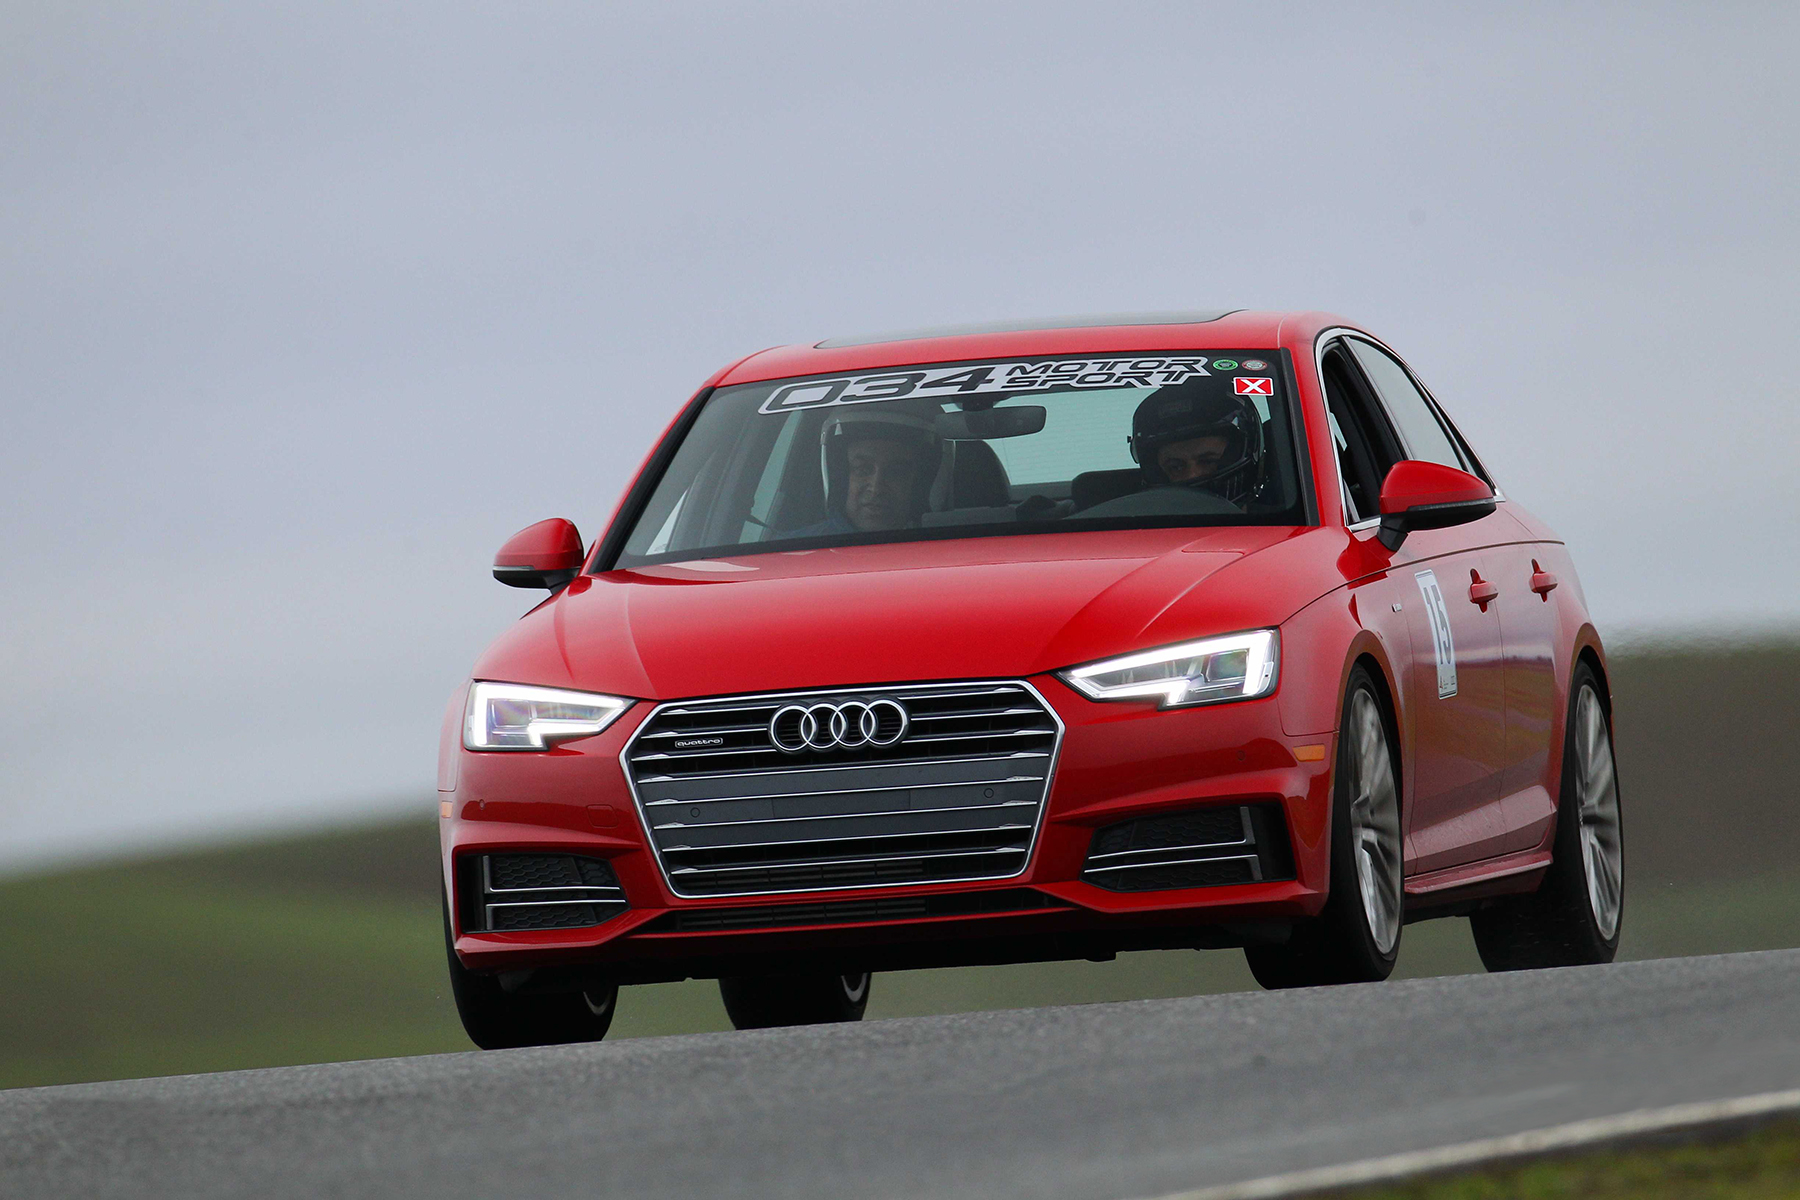 Lowered B9 Audi A4 in Tango Red - On Track at Thunderhill